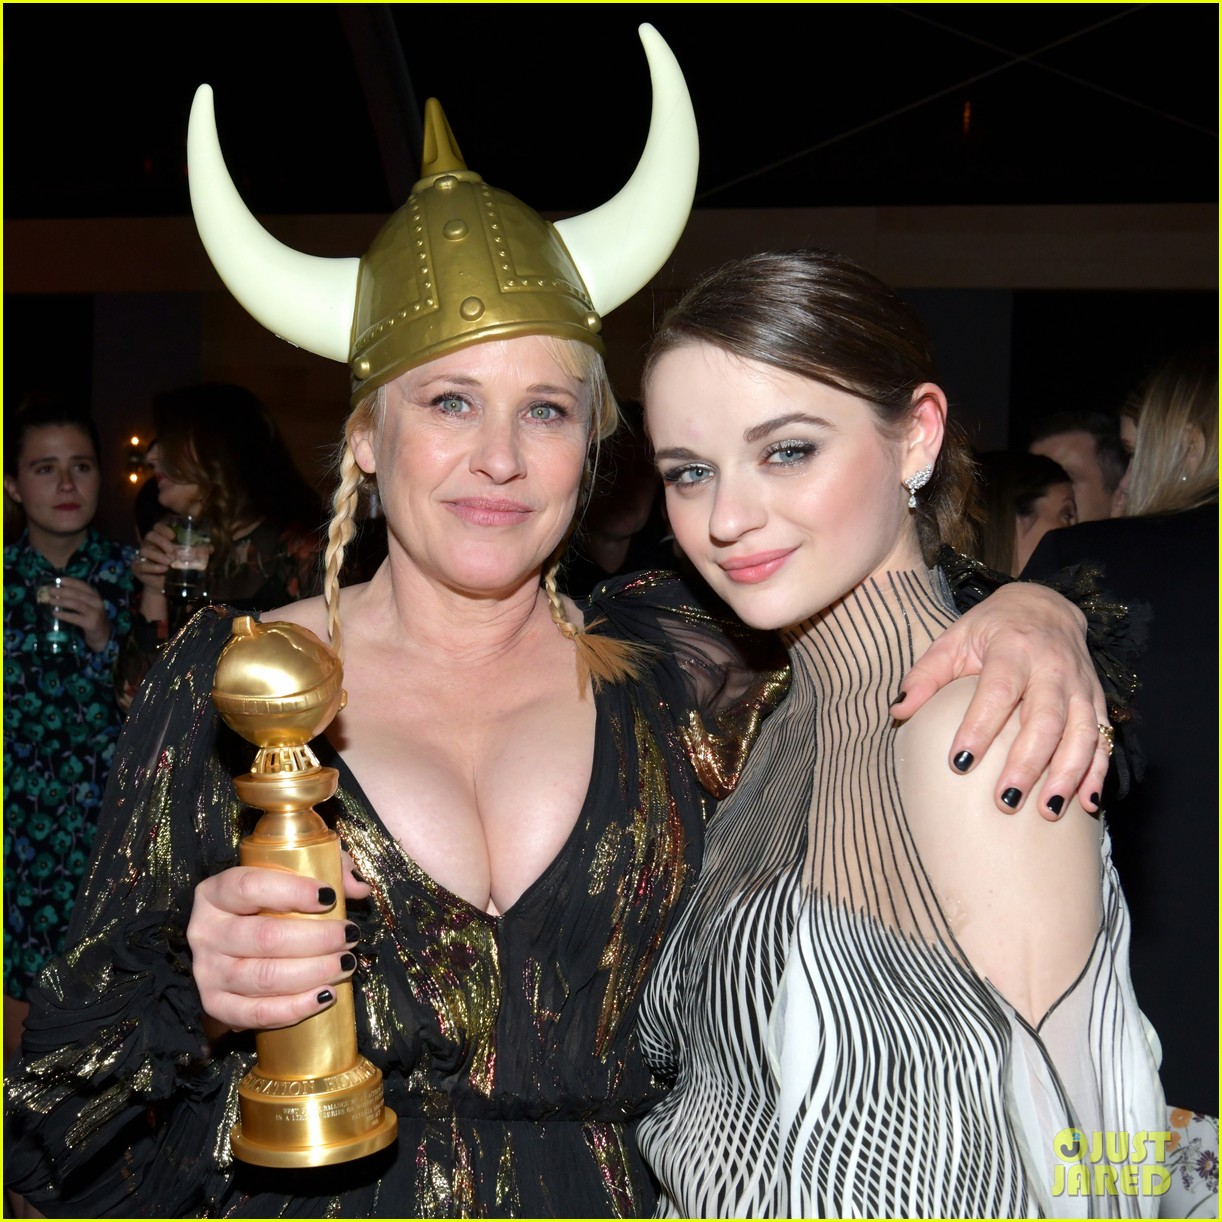 joey king reveals how patricia arquette gave her that bruise 02